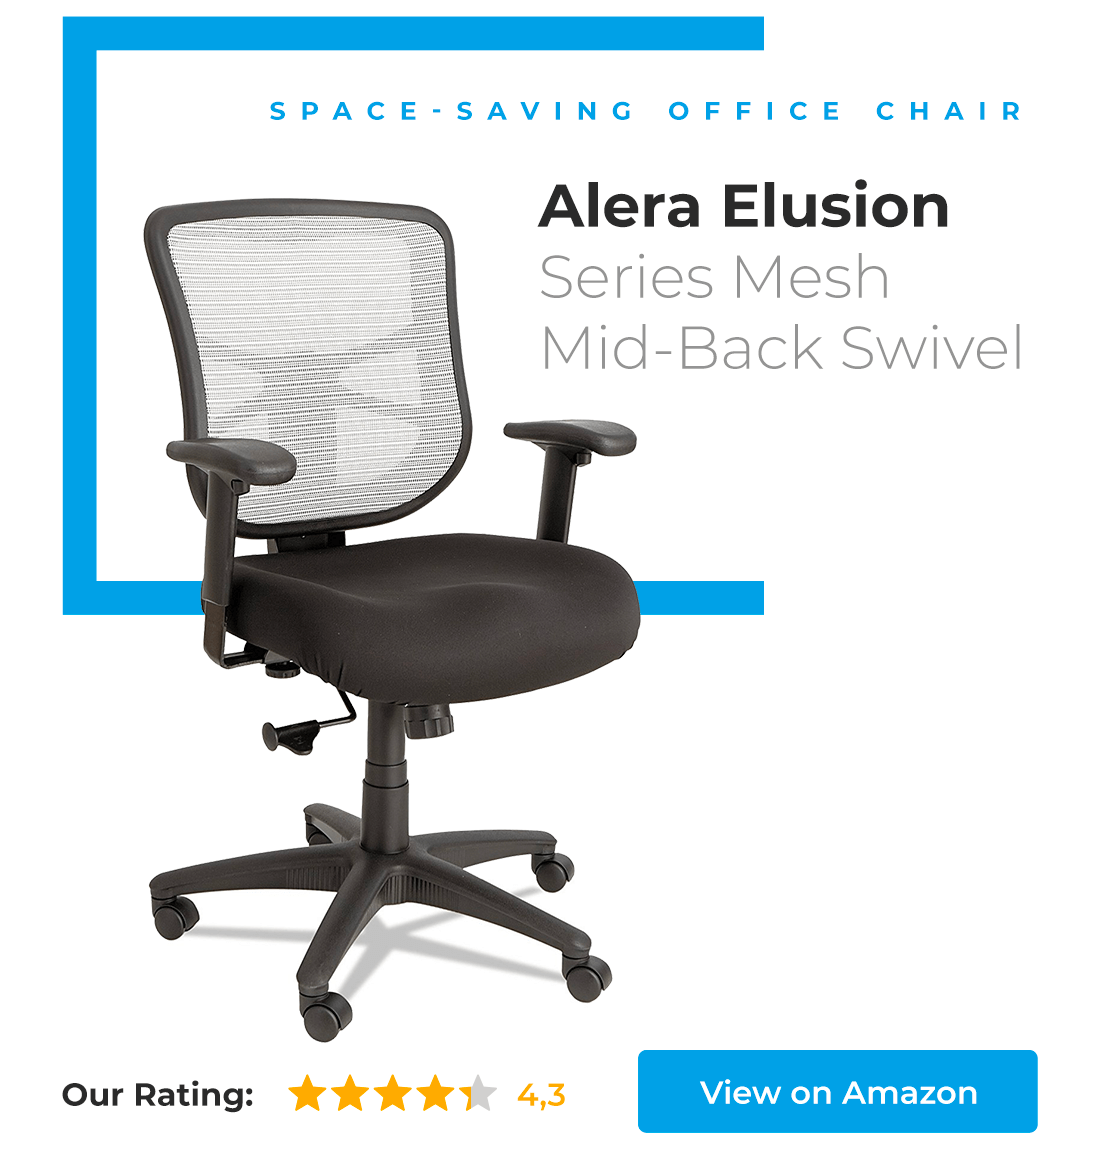 Alera Elusion Series is great space-saving office chair